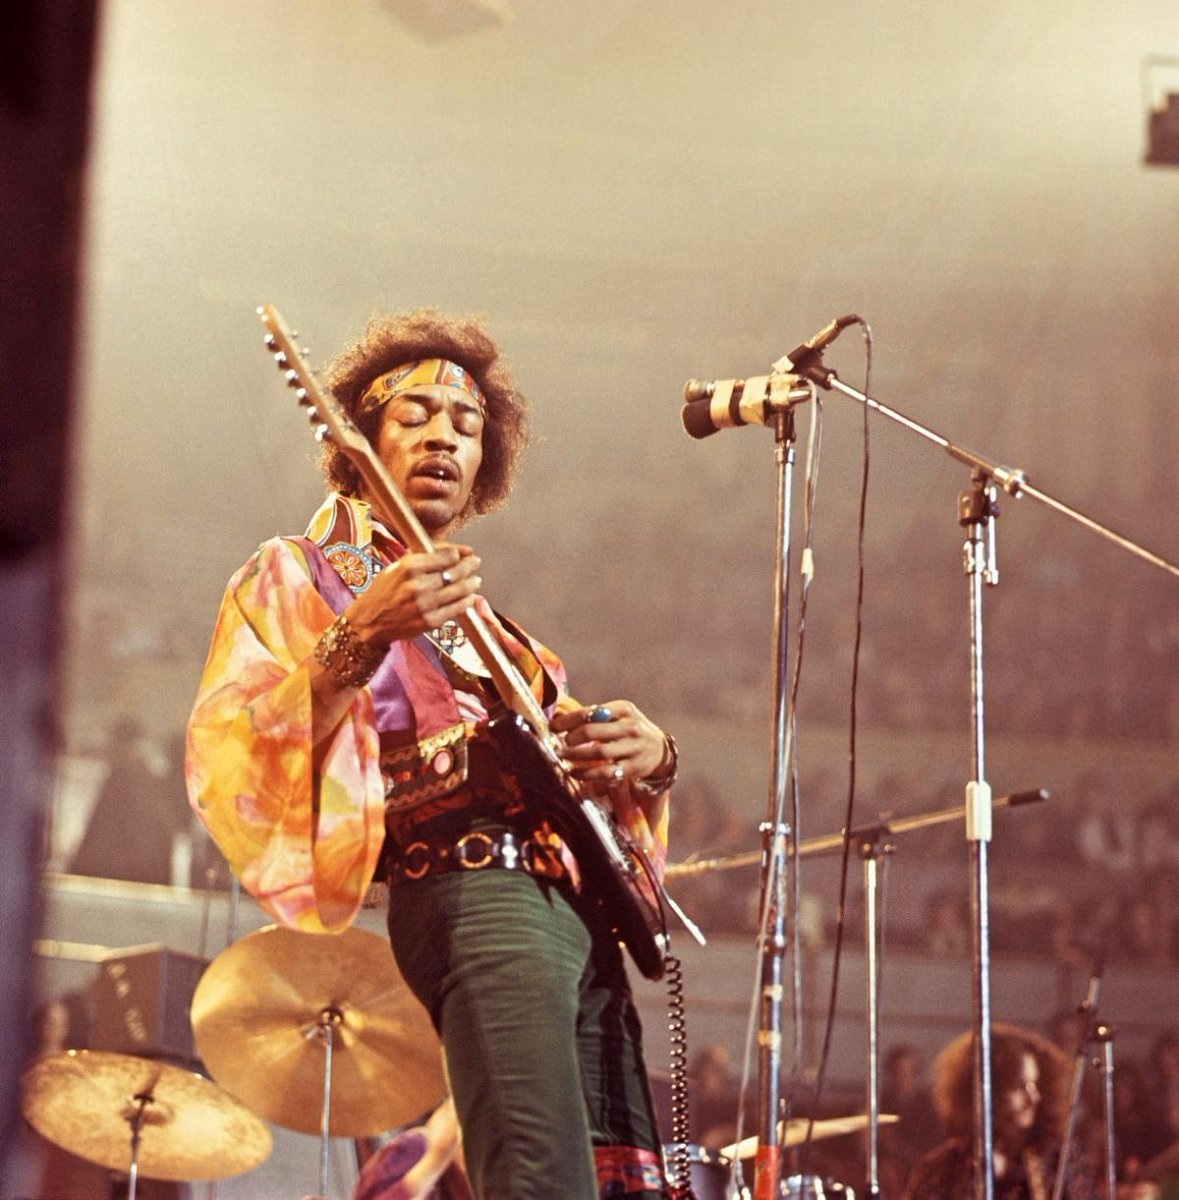 Can you believe Jimi Hendrix NEVER won at @TheGRAMMYs?